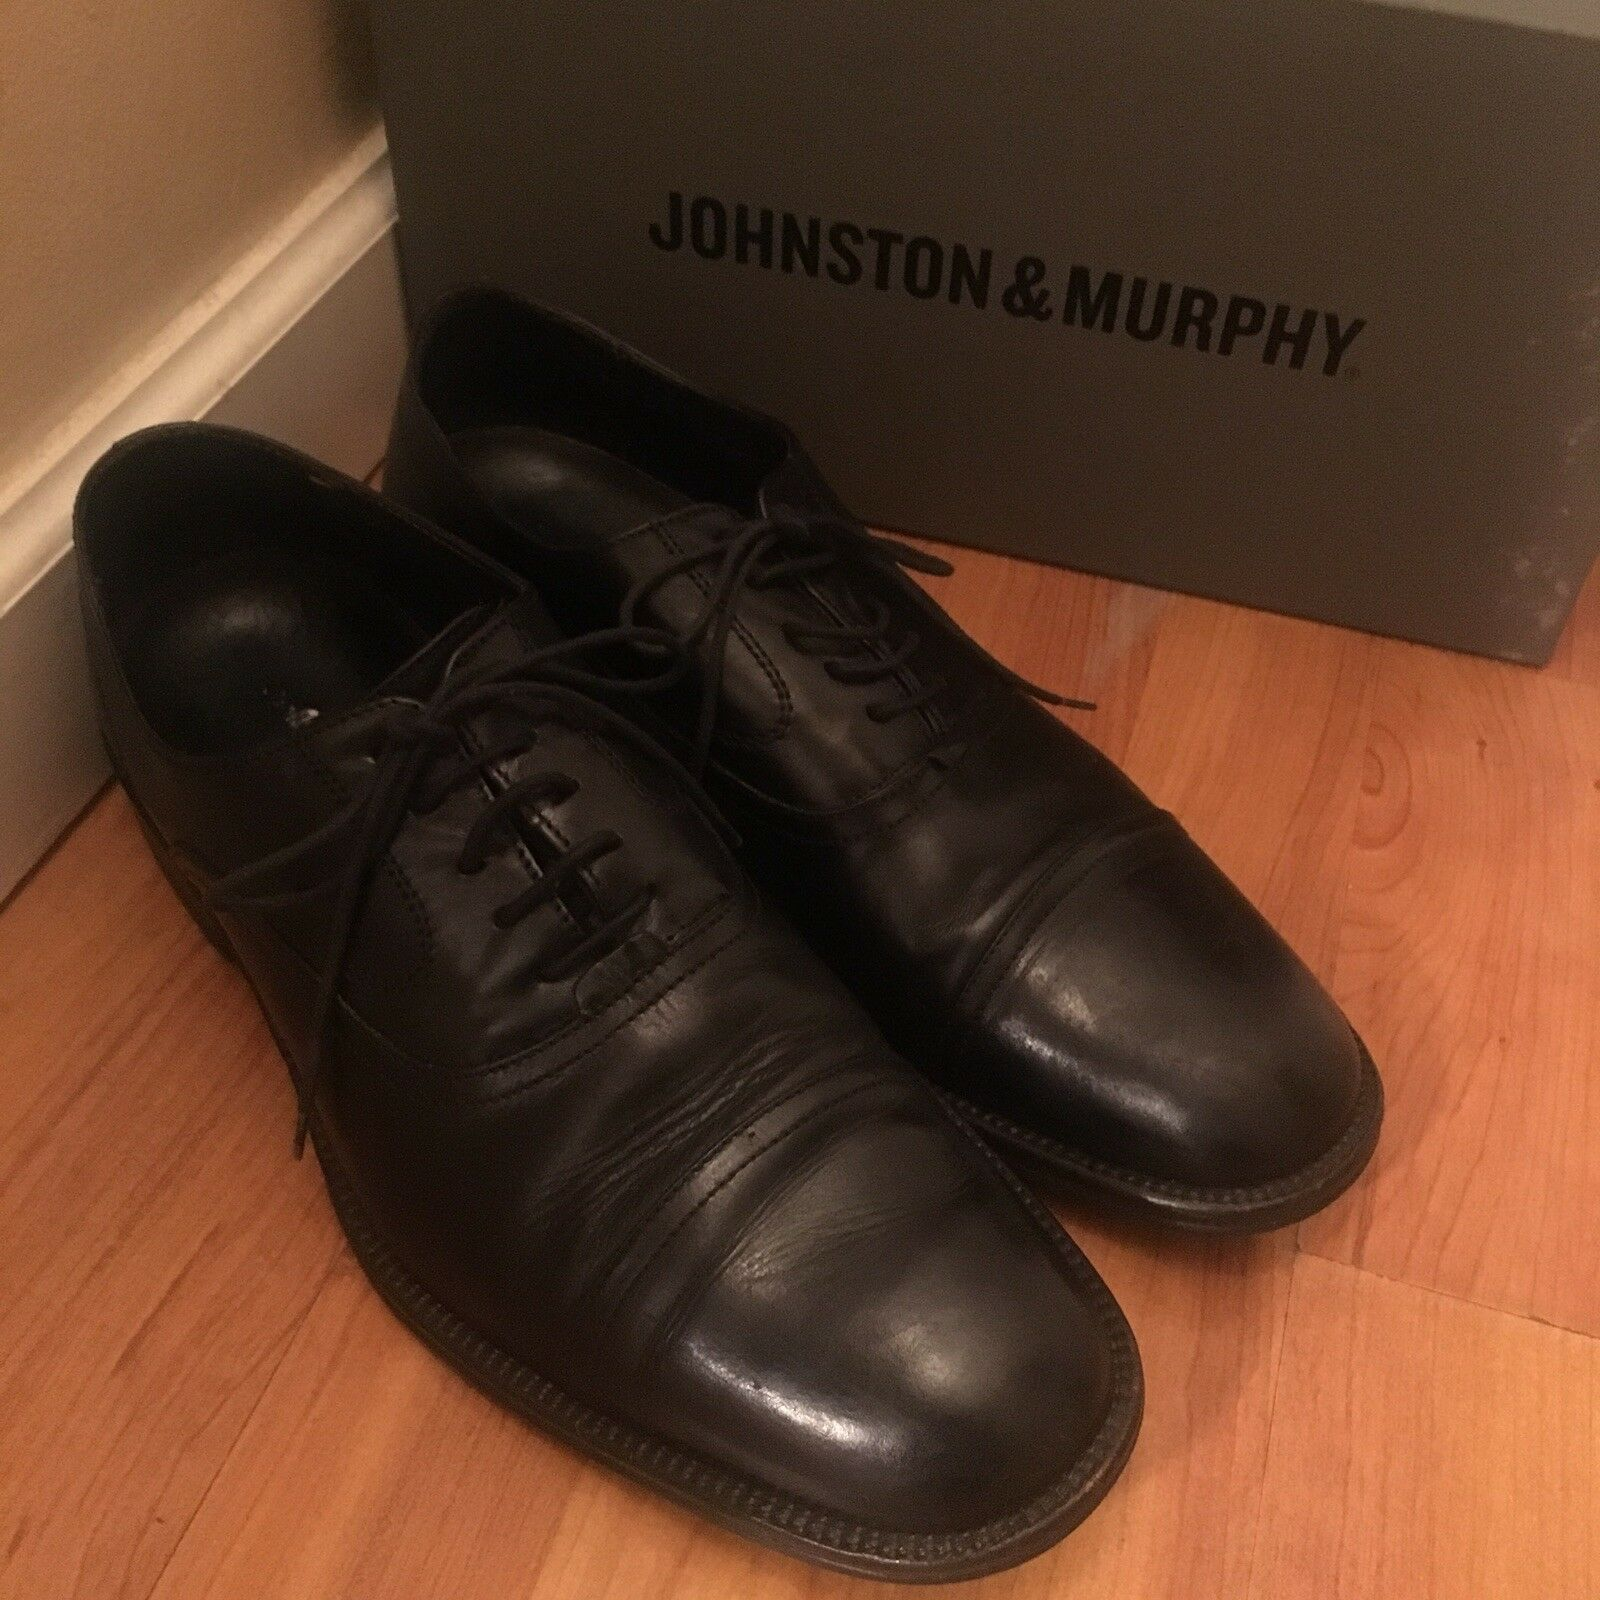 Johnston & Murphy Mens Oxford Barlow Cap Toe shoes Size 10 Black Leather